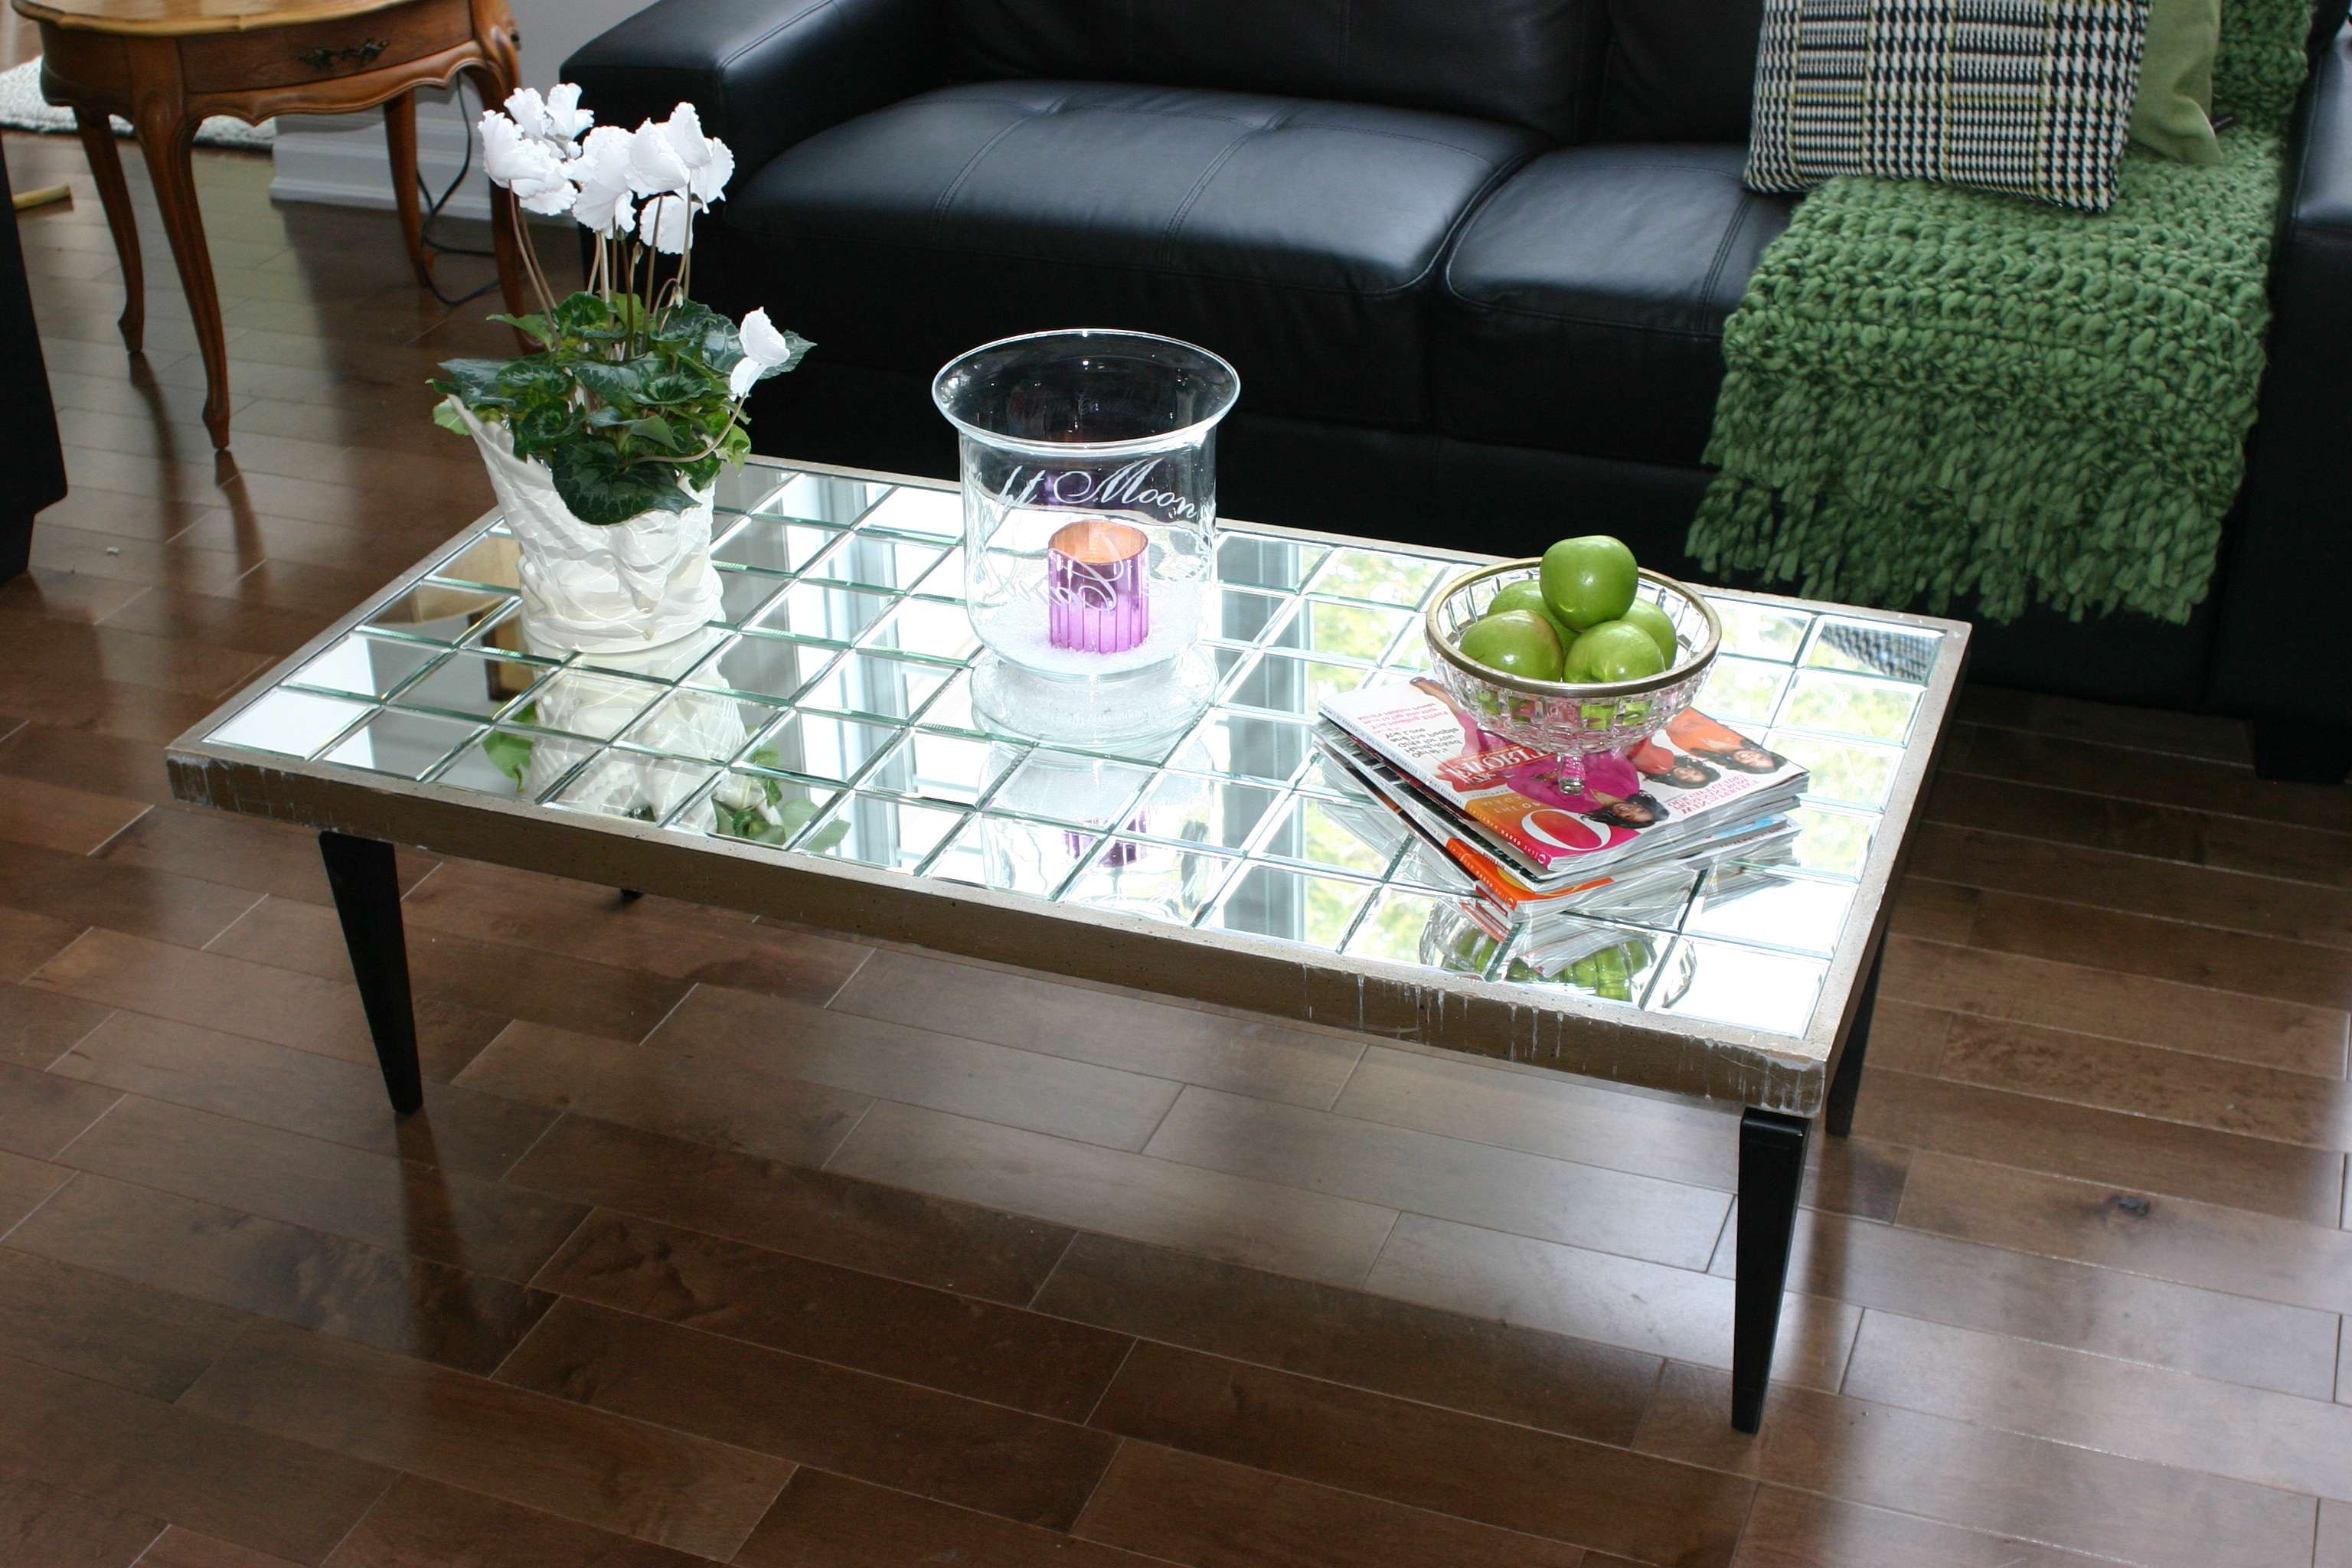 Tiled Mirrored Coffee Table Tables Antique Mirror / Thippo For Best And Newest Vintage Mirror Coffee Tables (View 13 of 20)